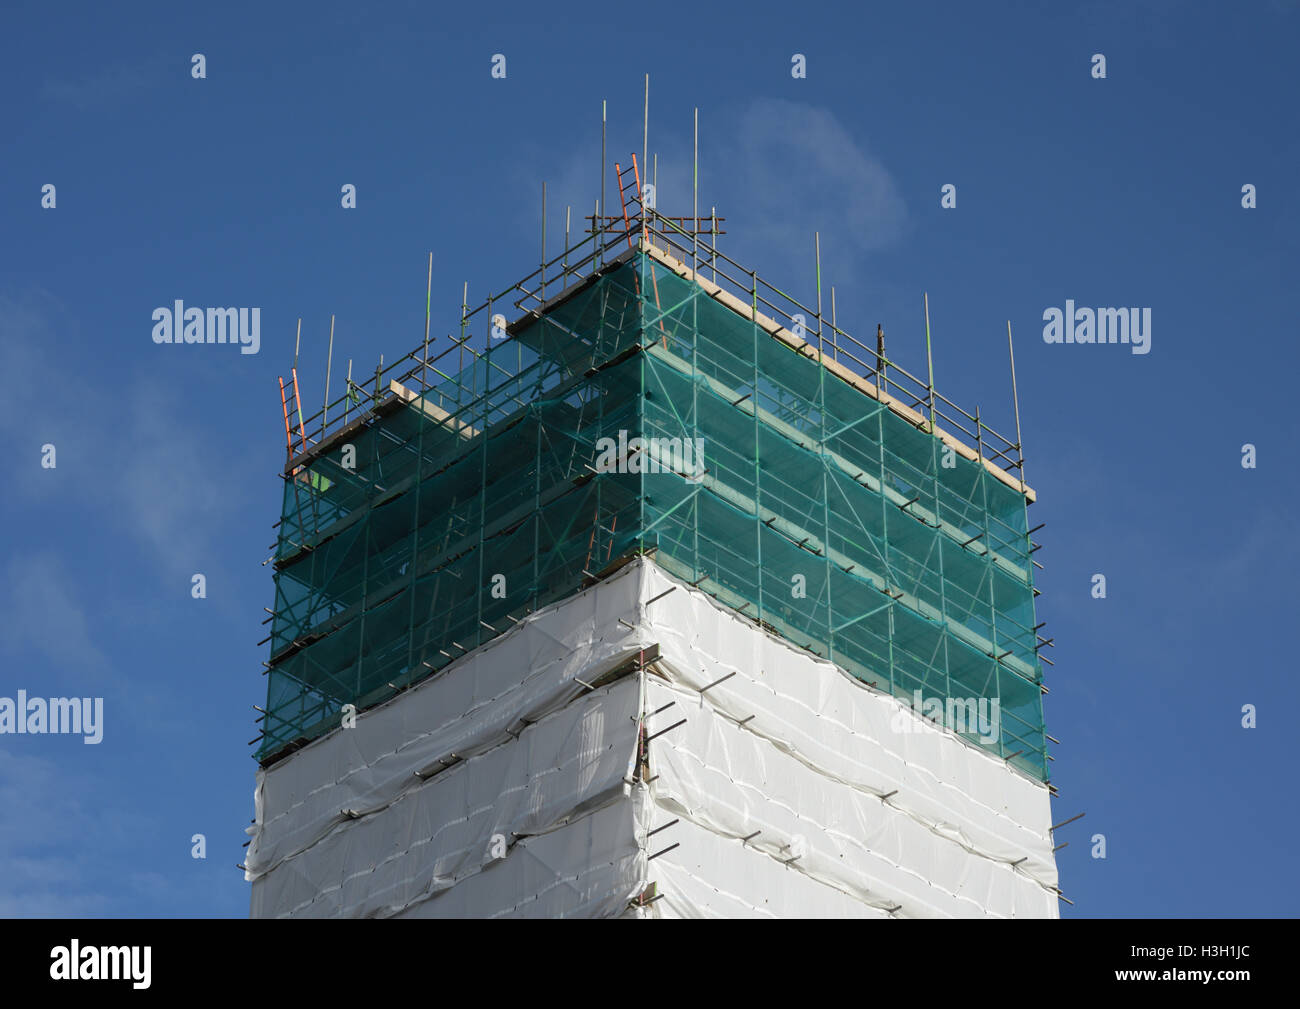 Sandblasting containment curtains protect the environment against airborne hazards during renovation of all saints - Stock Image